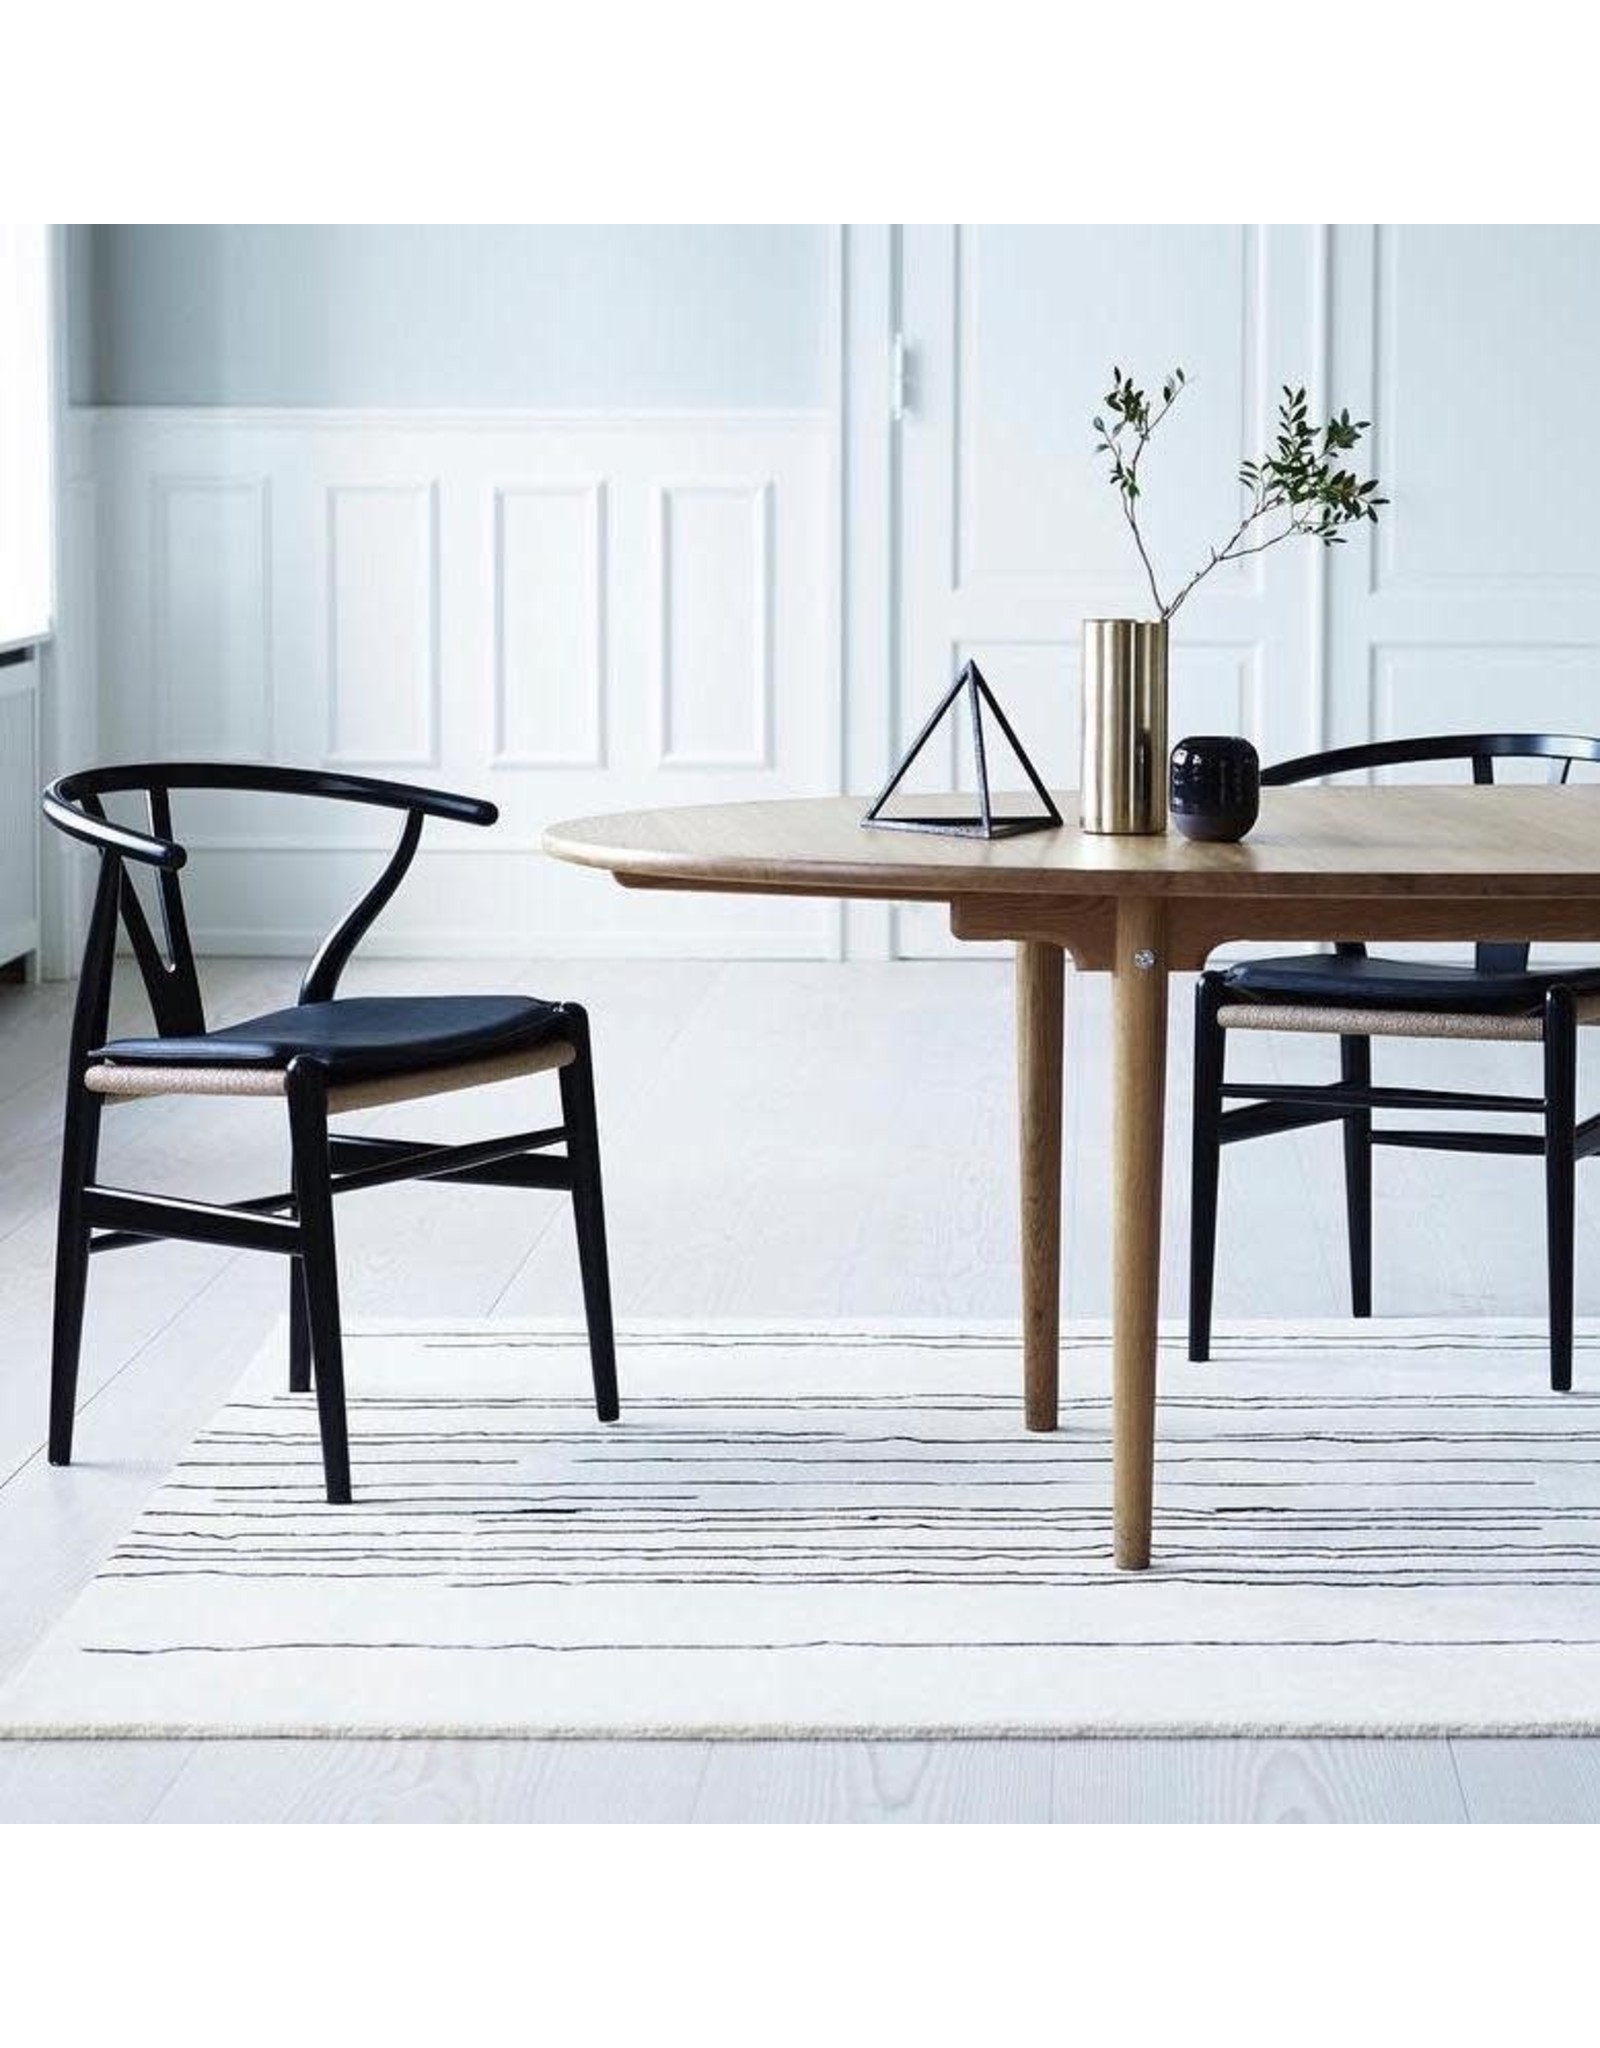 CARL HANSEN & SON CH24 WISHBONE CHAIR IN COLOR LACQUER FINISH